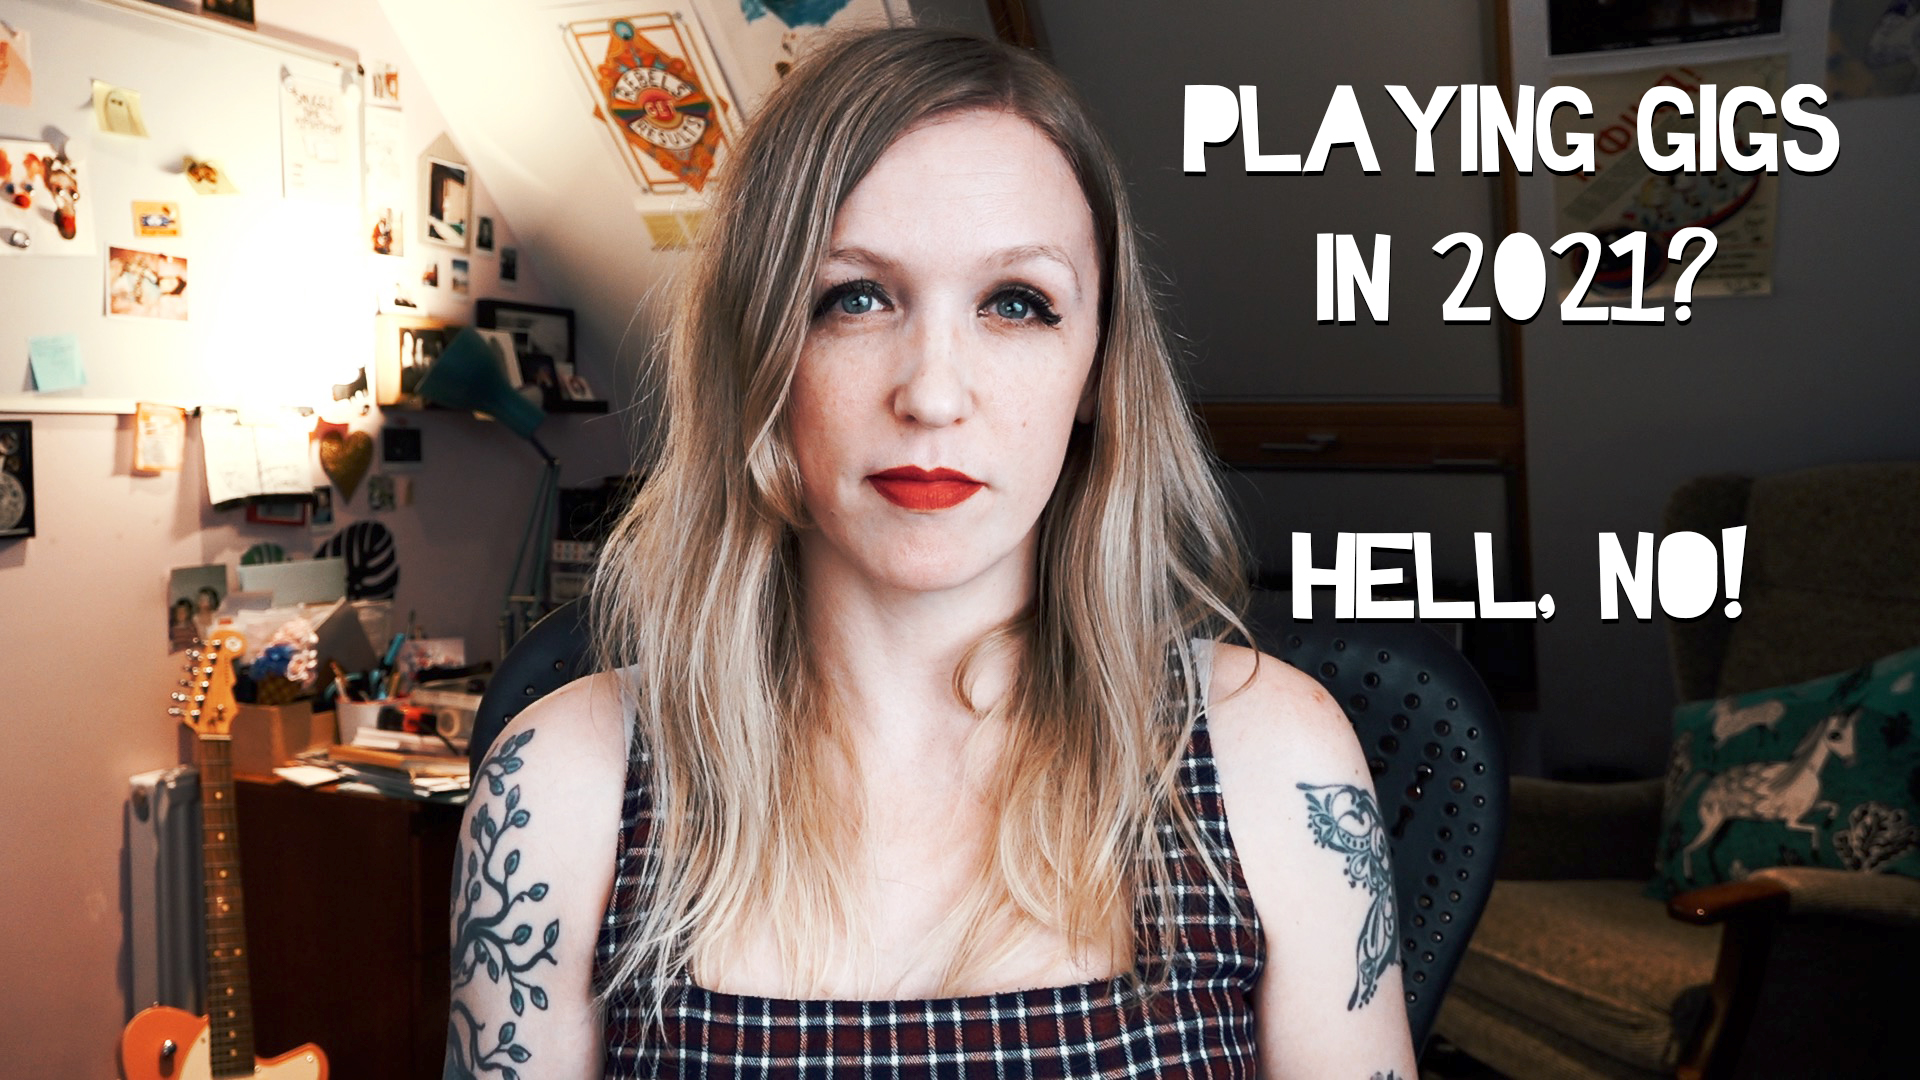 Why I won't be playing in-person gigs in 2021